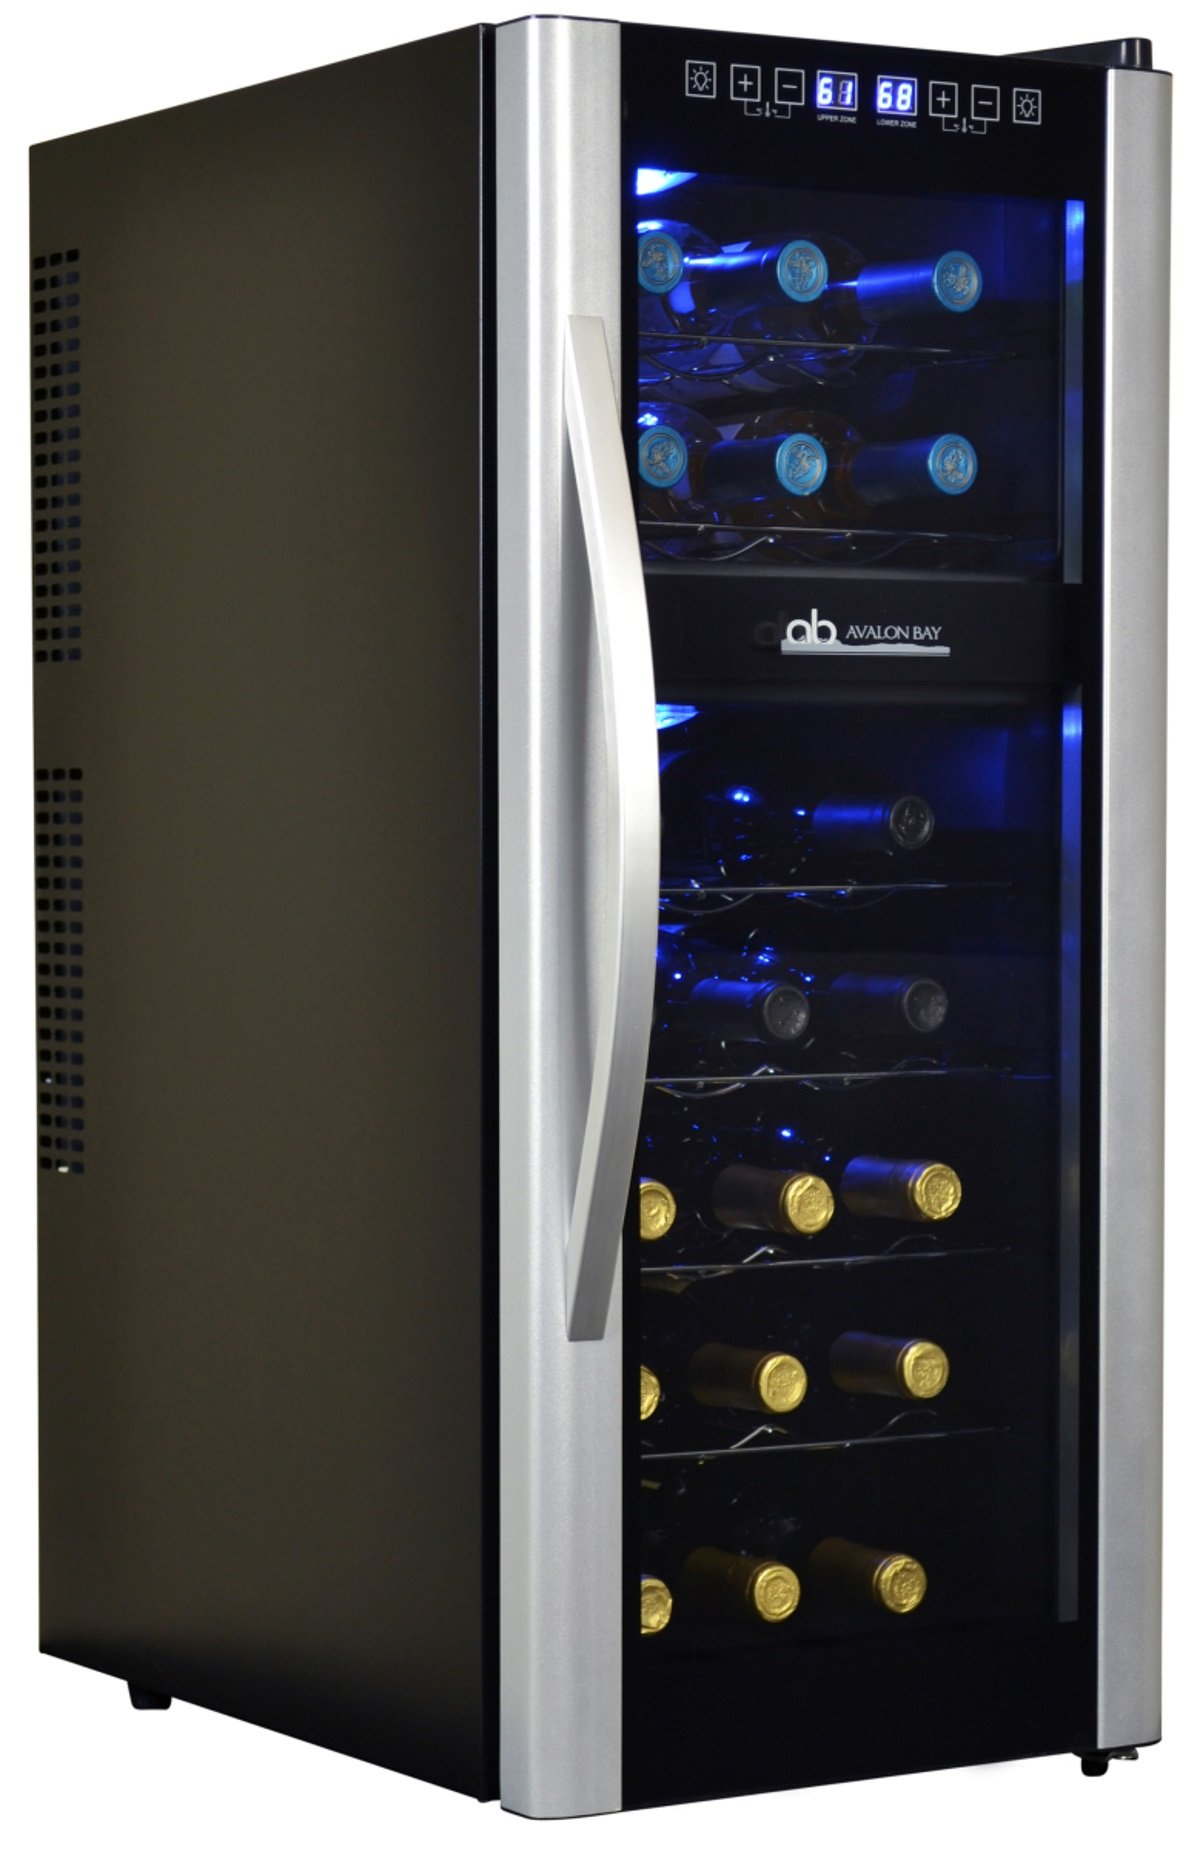 Avalon Bay AB-WINE21DS 21 Bottle Dual Zone Wine Cooler by Avalon Bay (Image #5)